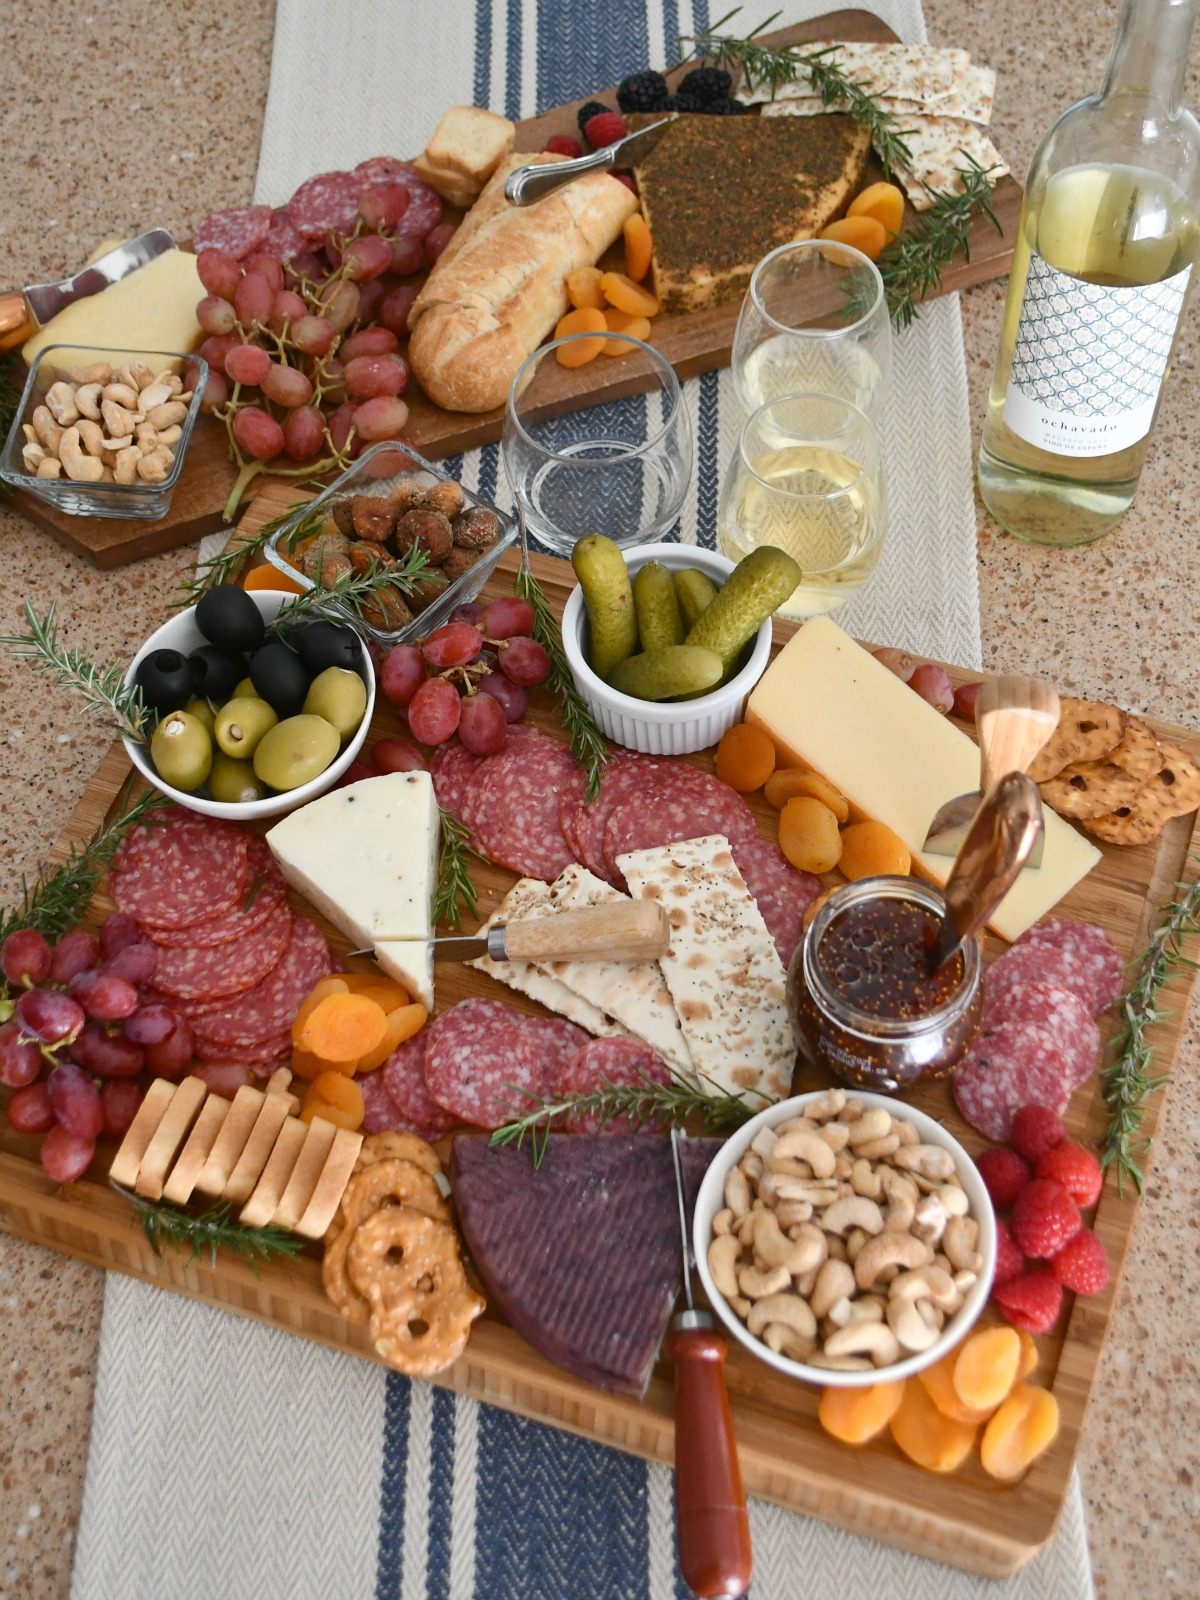 charcuterie boards with cheese assortment, wine, a bread loaf, glasses, and more